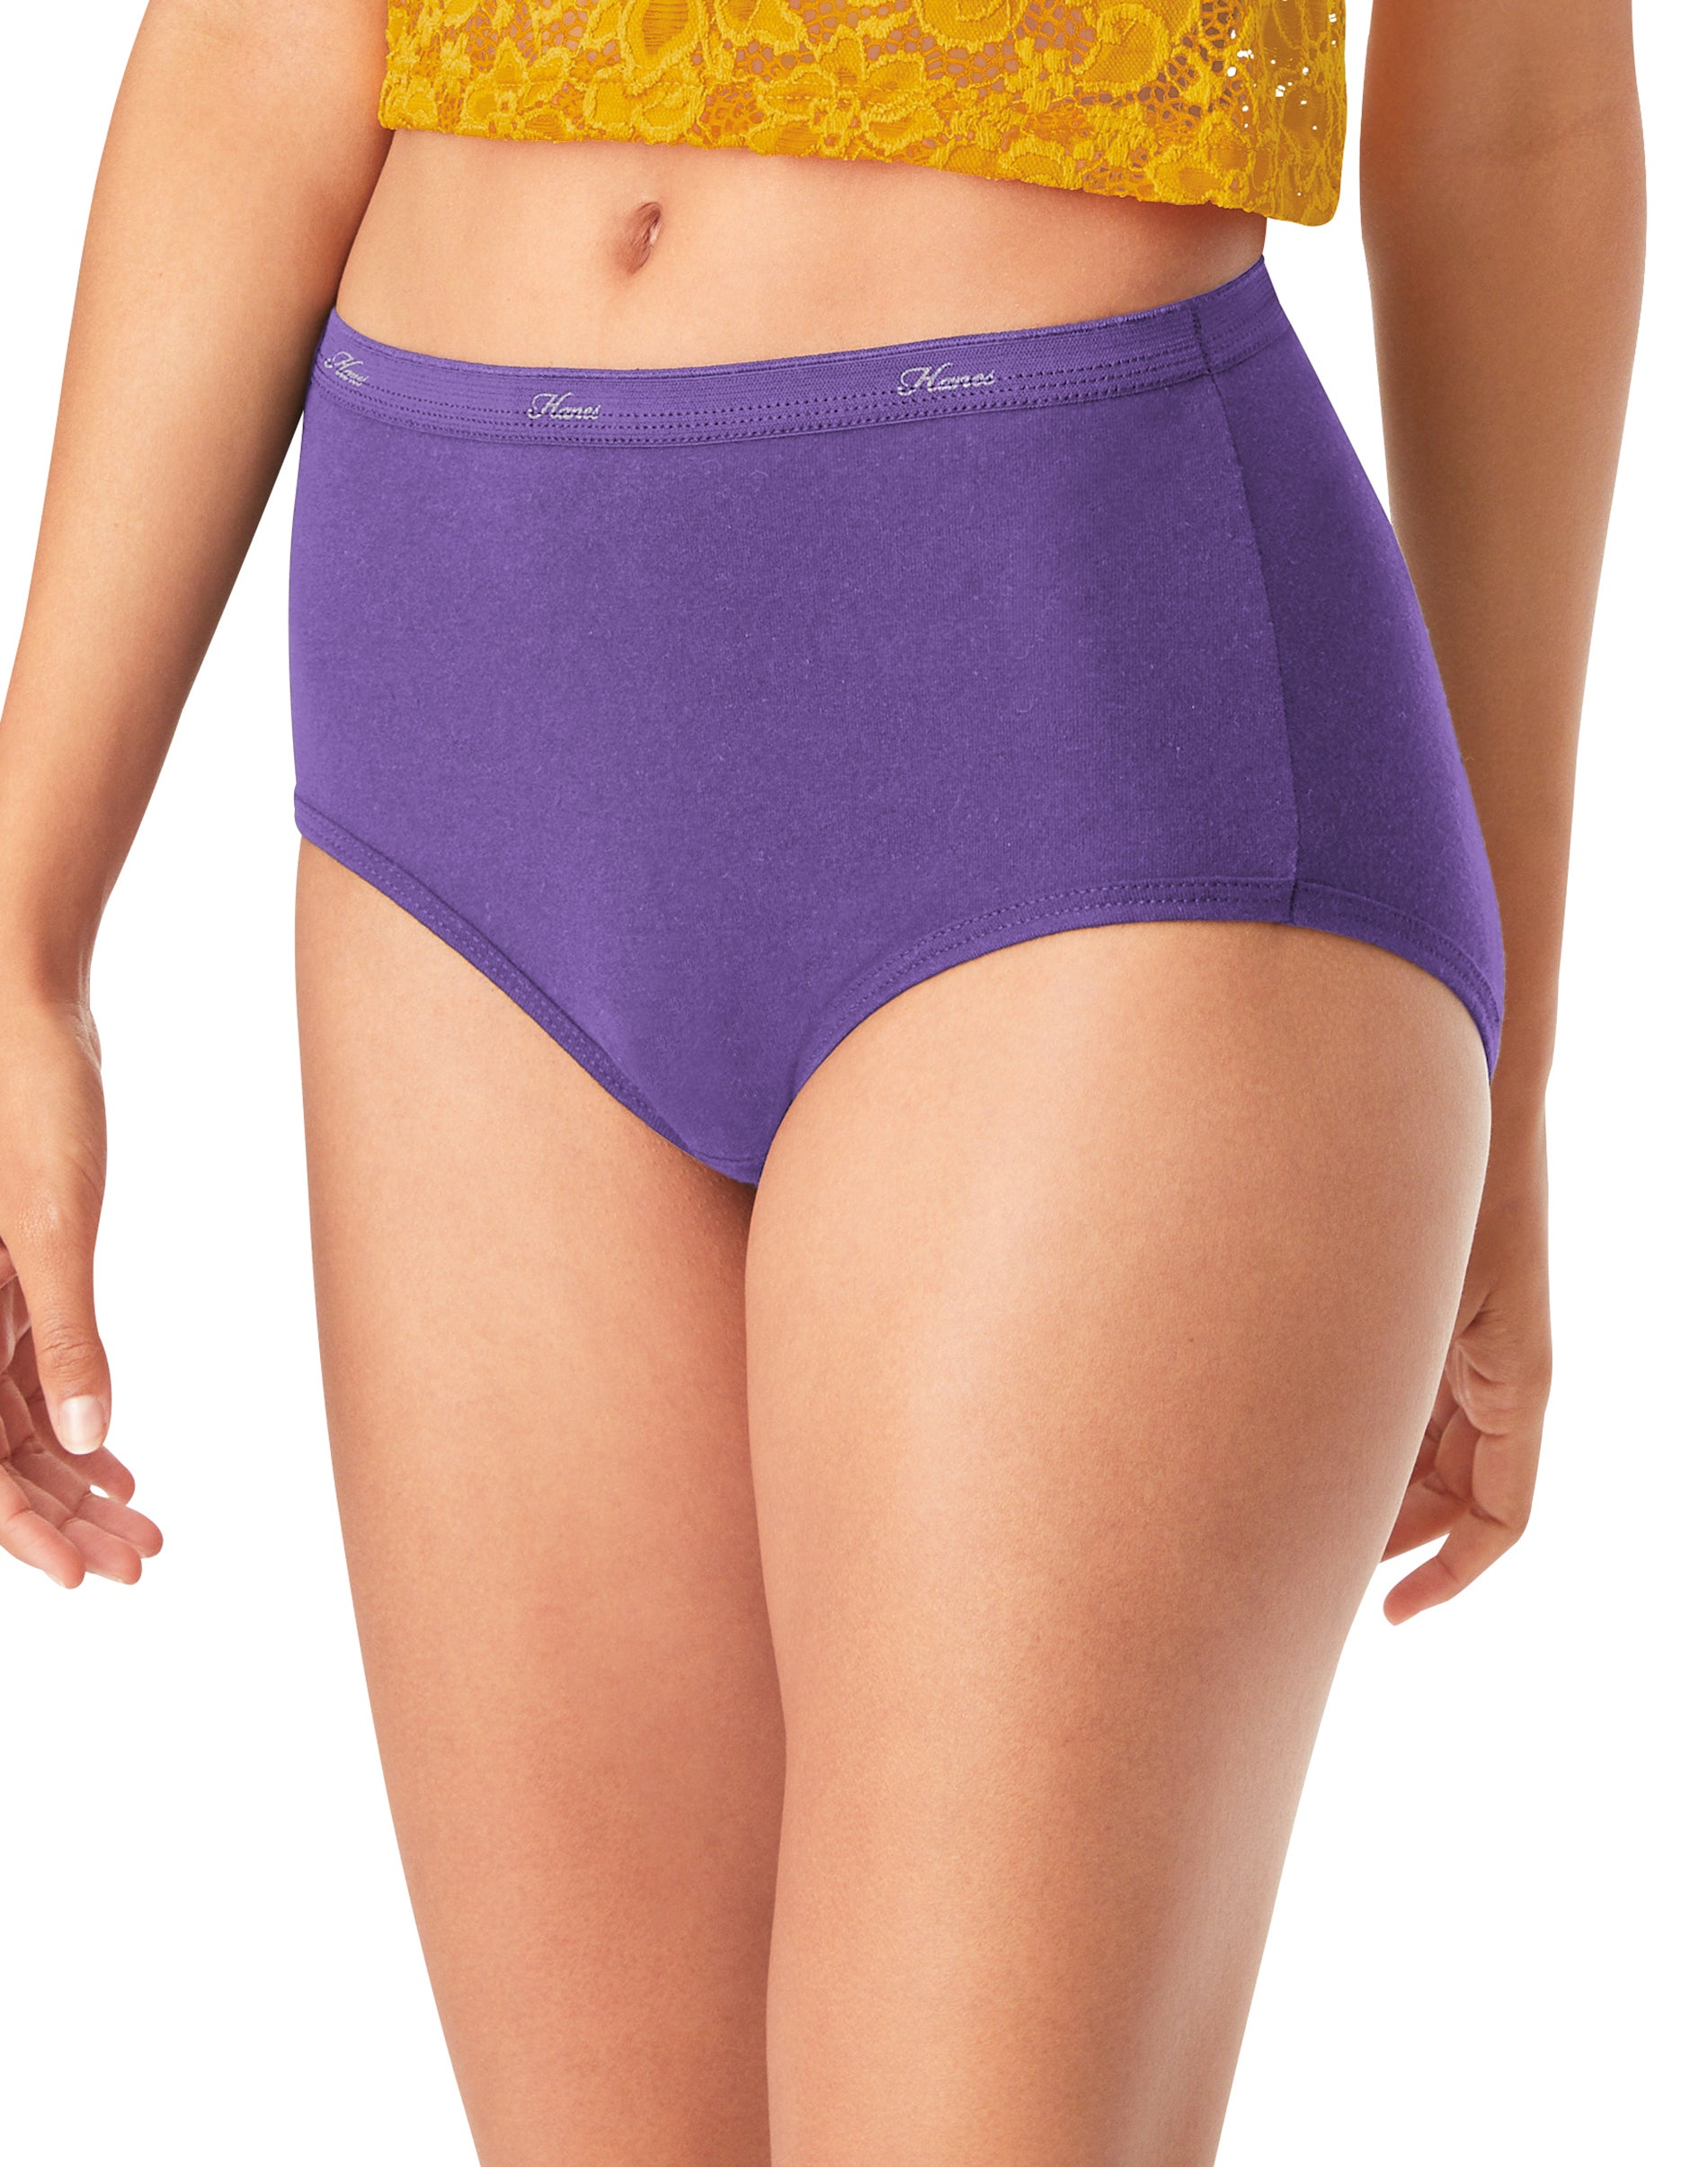 Hanes Women/'s 6 Pack Ultra Light Low Rise Briefs Sizes 6,7,9,10 NEW